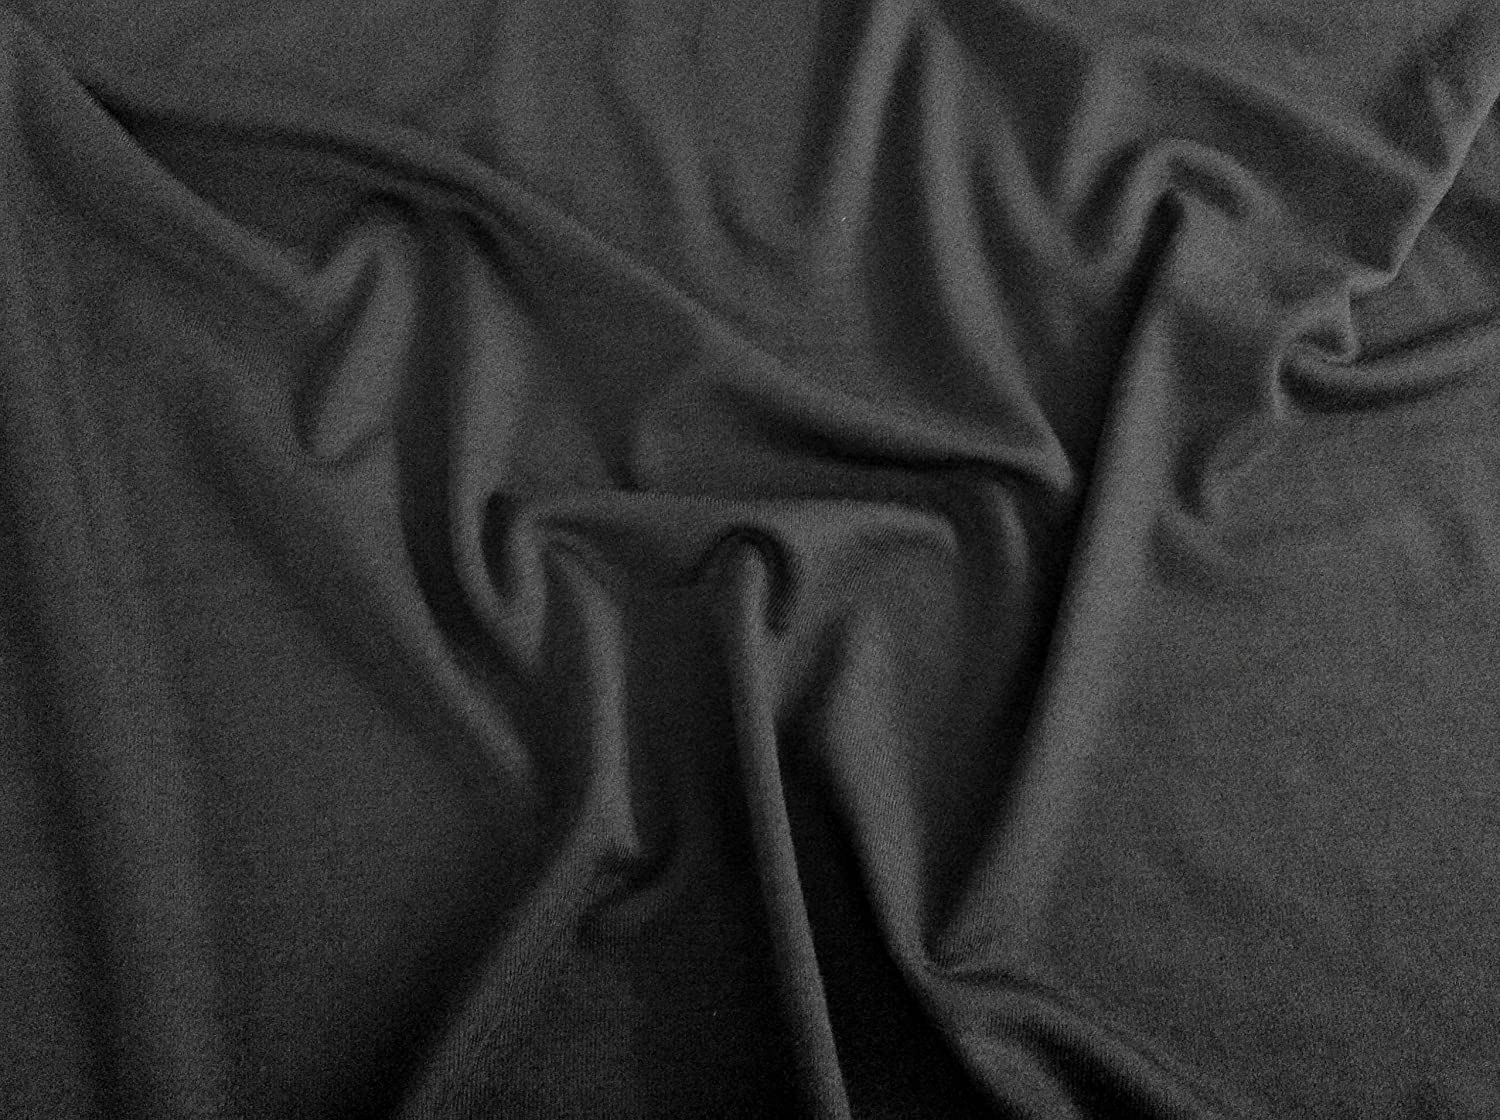 Black Viscose Elastane Spandex (Stretch) Fabric Plain 152cm wide per metre